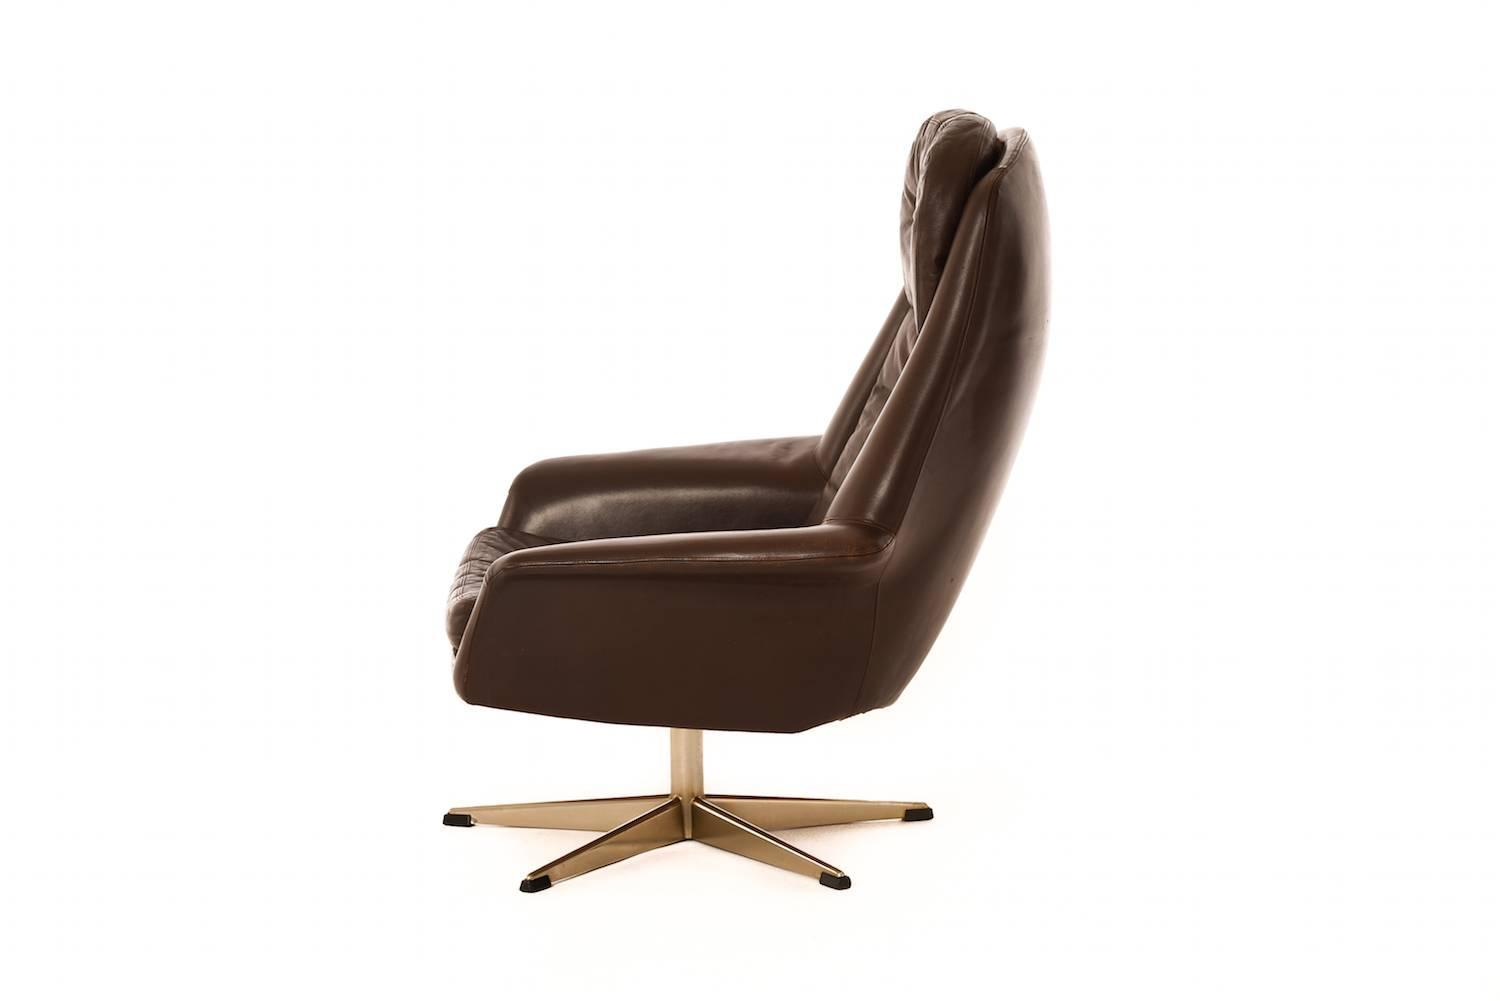 danish modern tufted leather chair at 1stdibs